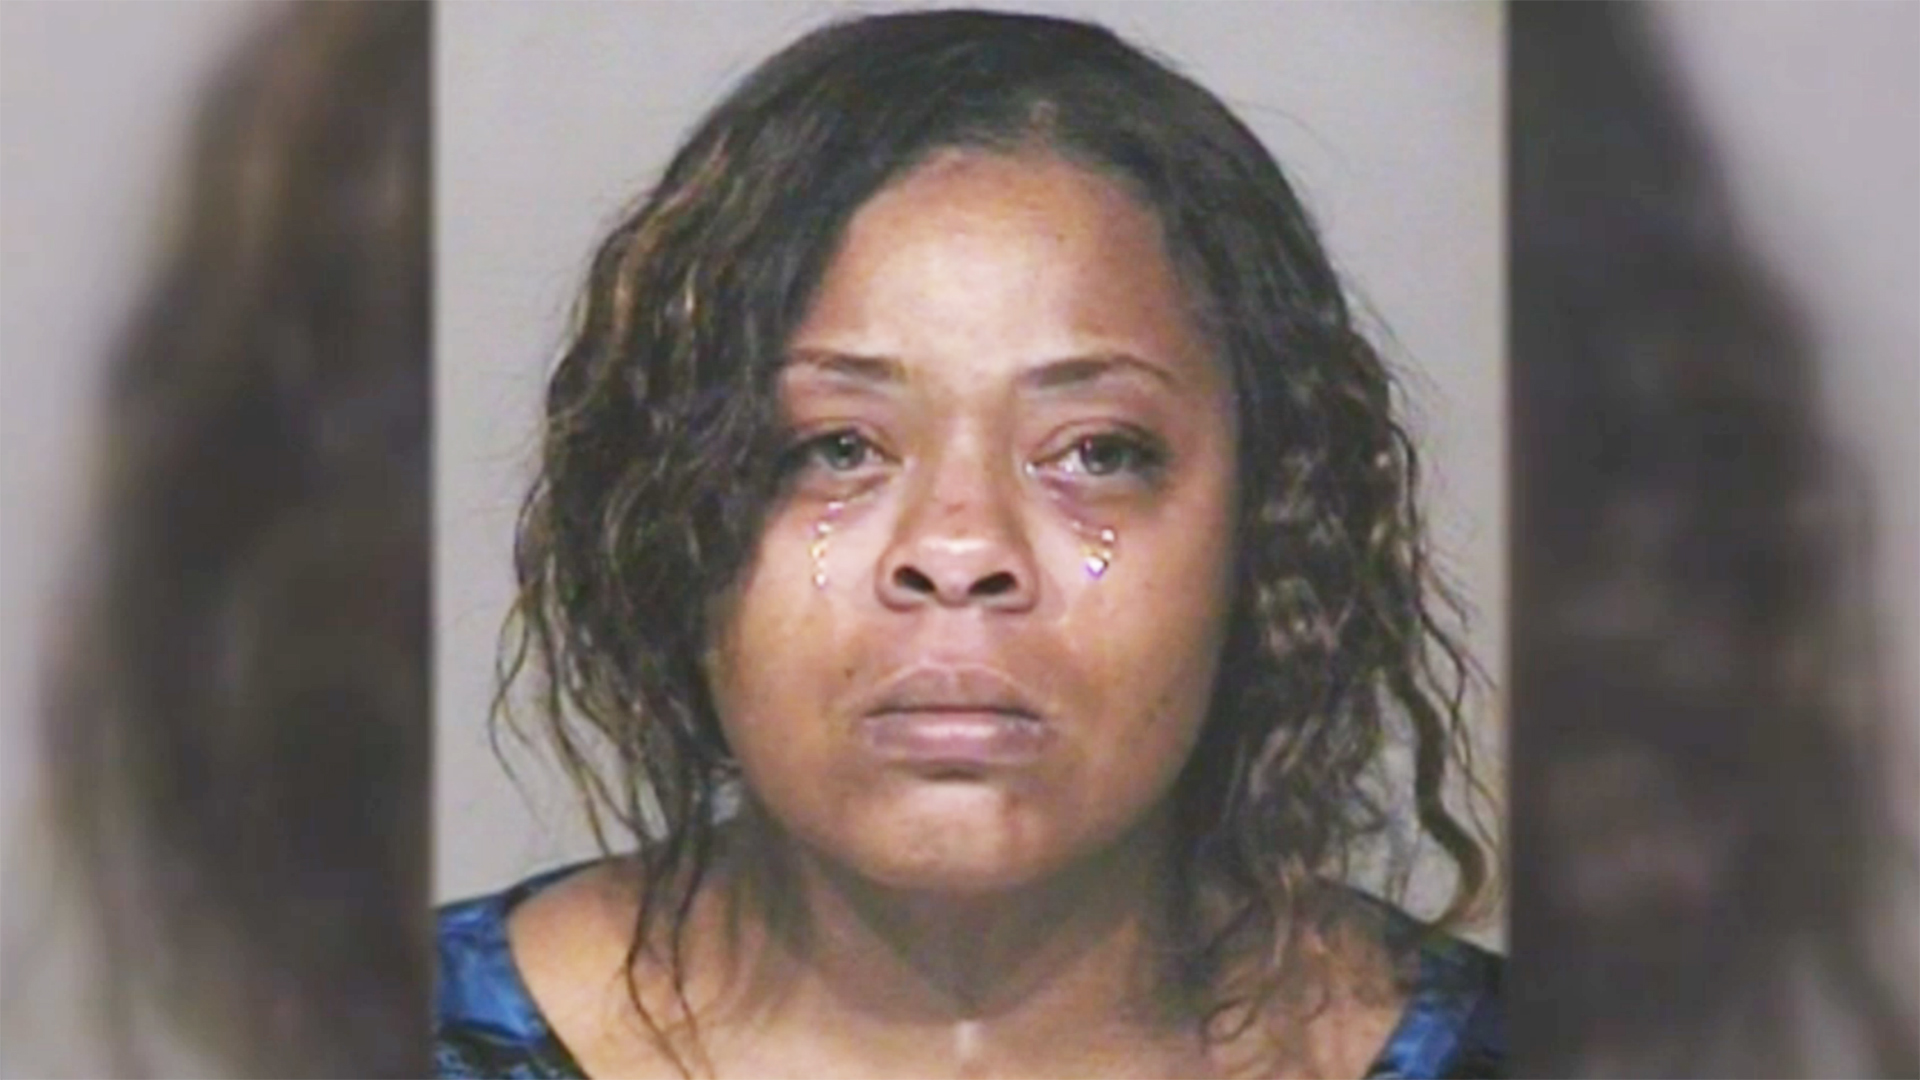 Support Pours In For Mom Accused Of Leaving Kids In Hot Car